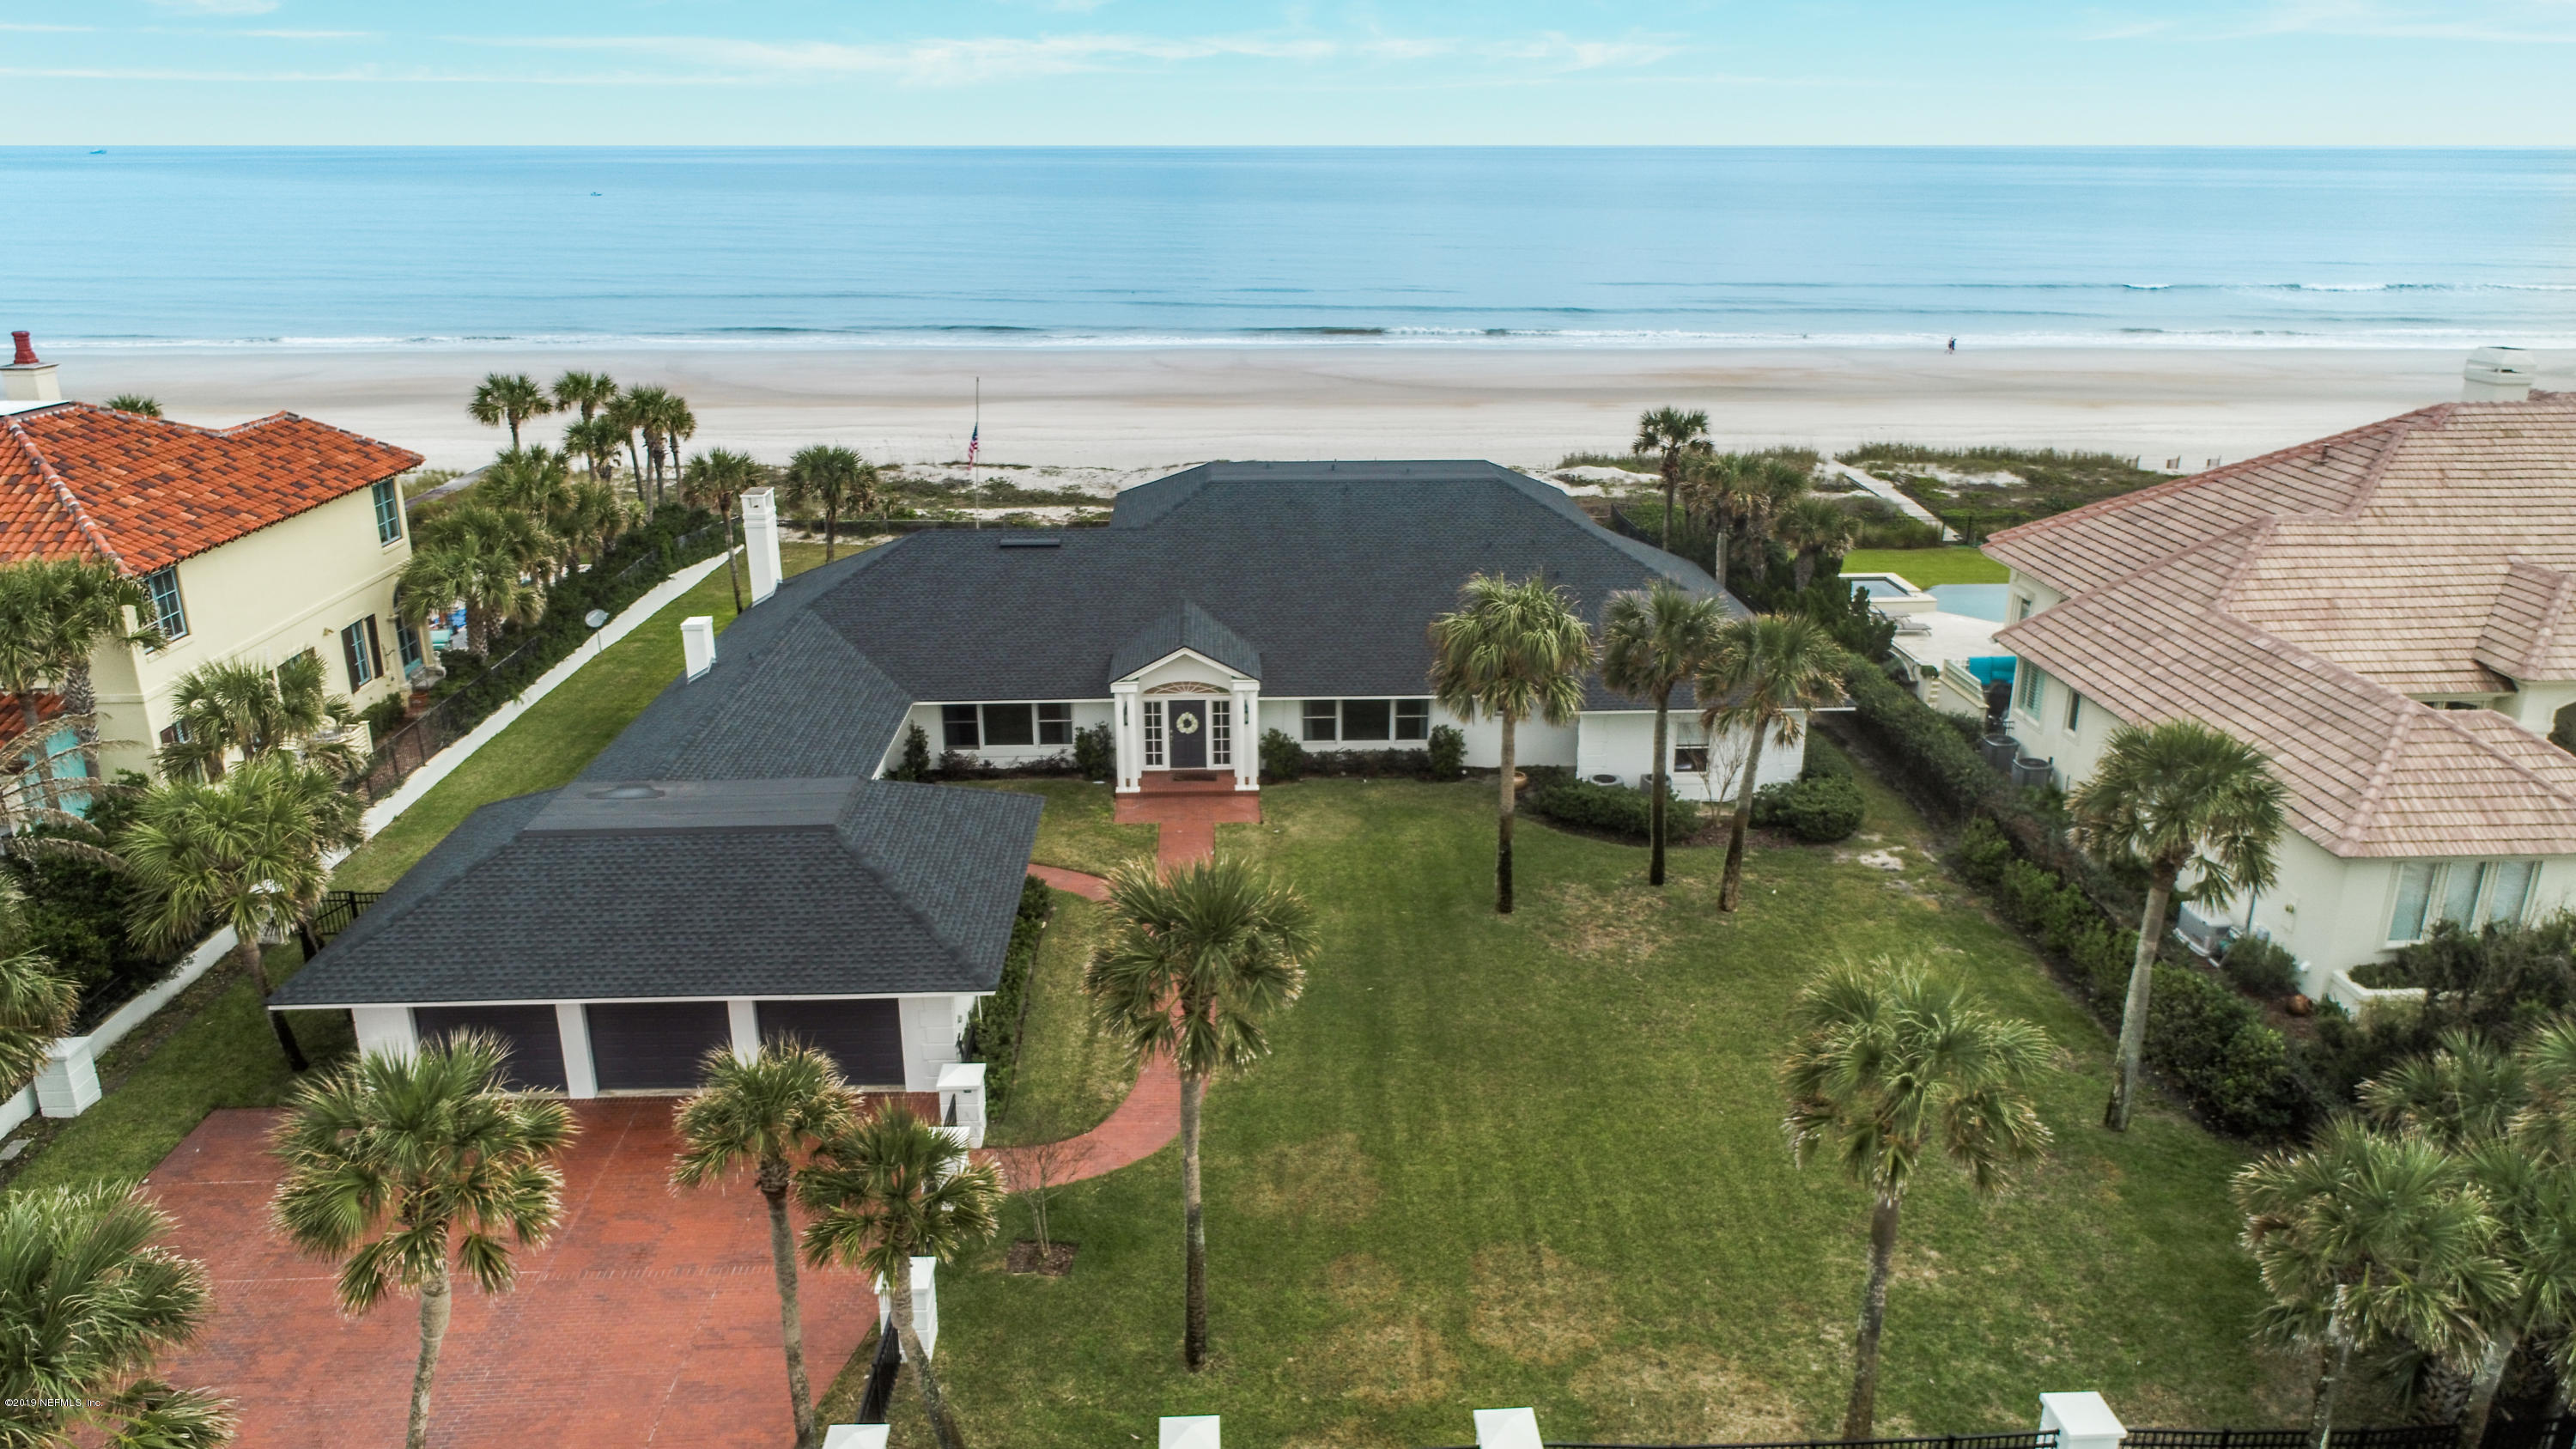 77  PONTE VEDRA BLVD, one of homes for sale in Ponte Vedra